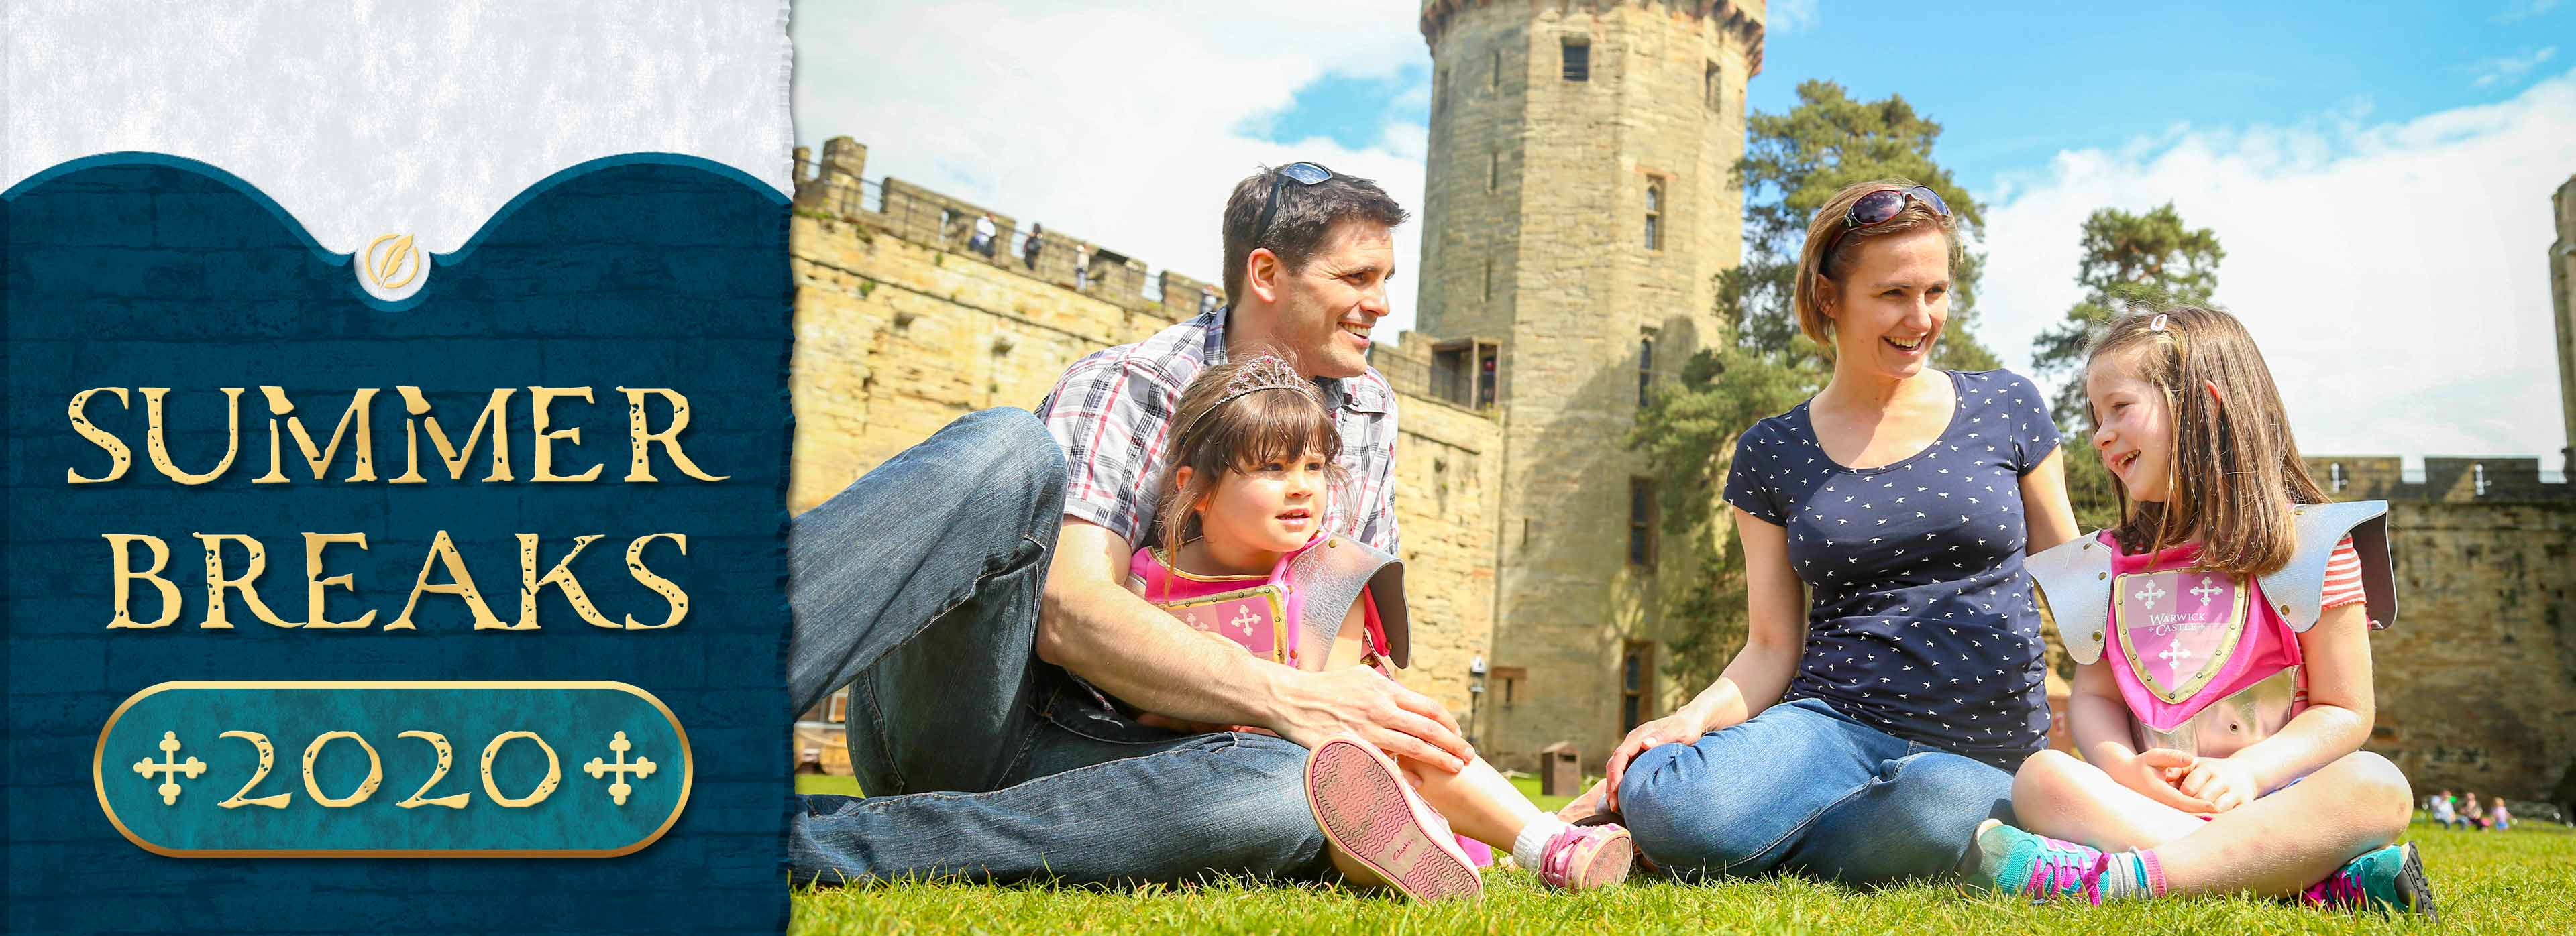 Save up to 25% on 2020 breaks at Warwick Castle